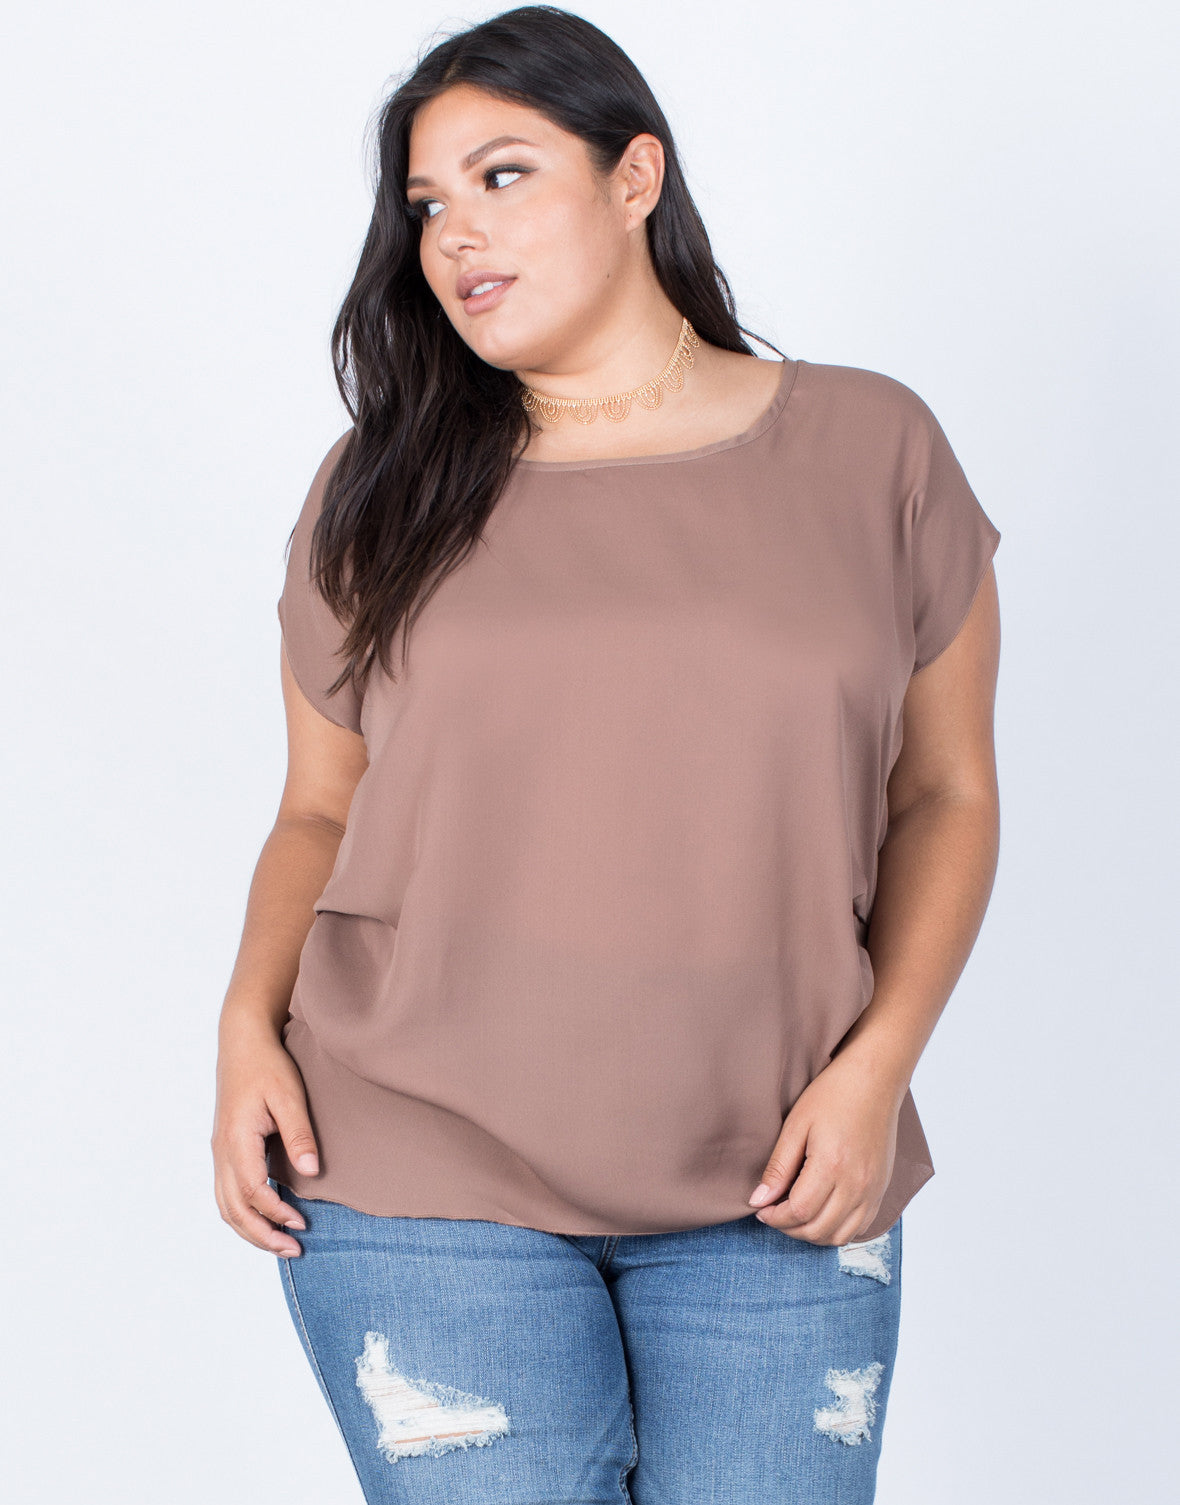 Mocha Plus Size Effortless Chiffon Blouse - Front View